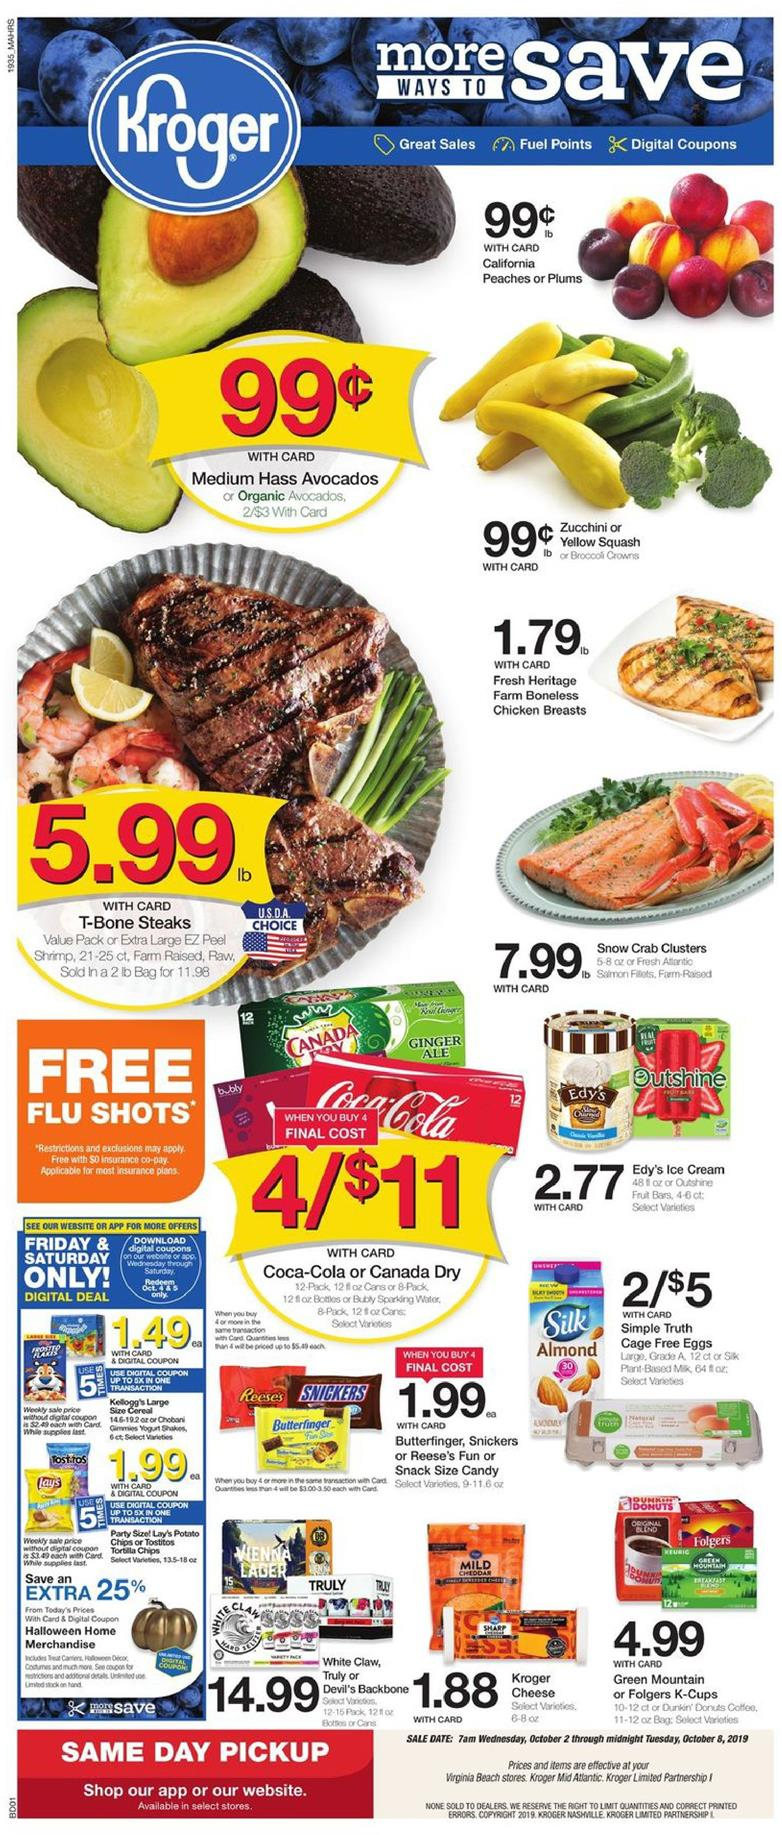 kroger weekly ad oct 2 2019